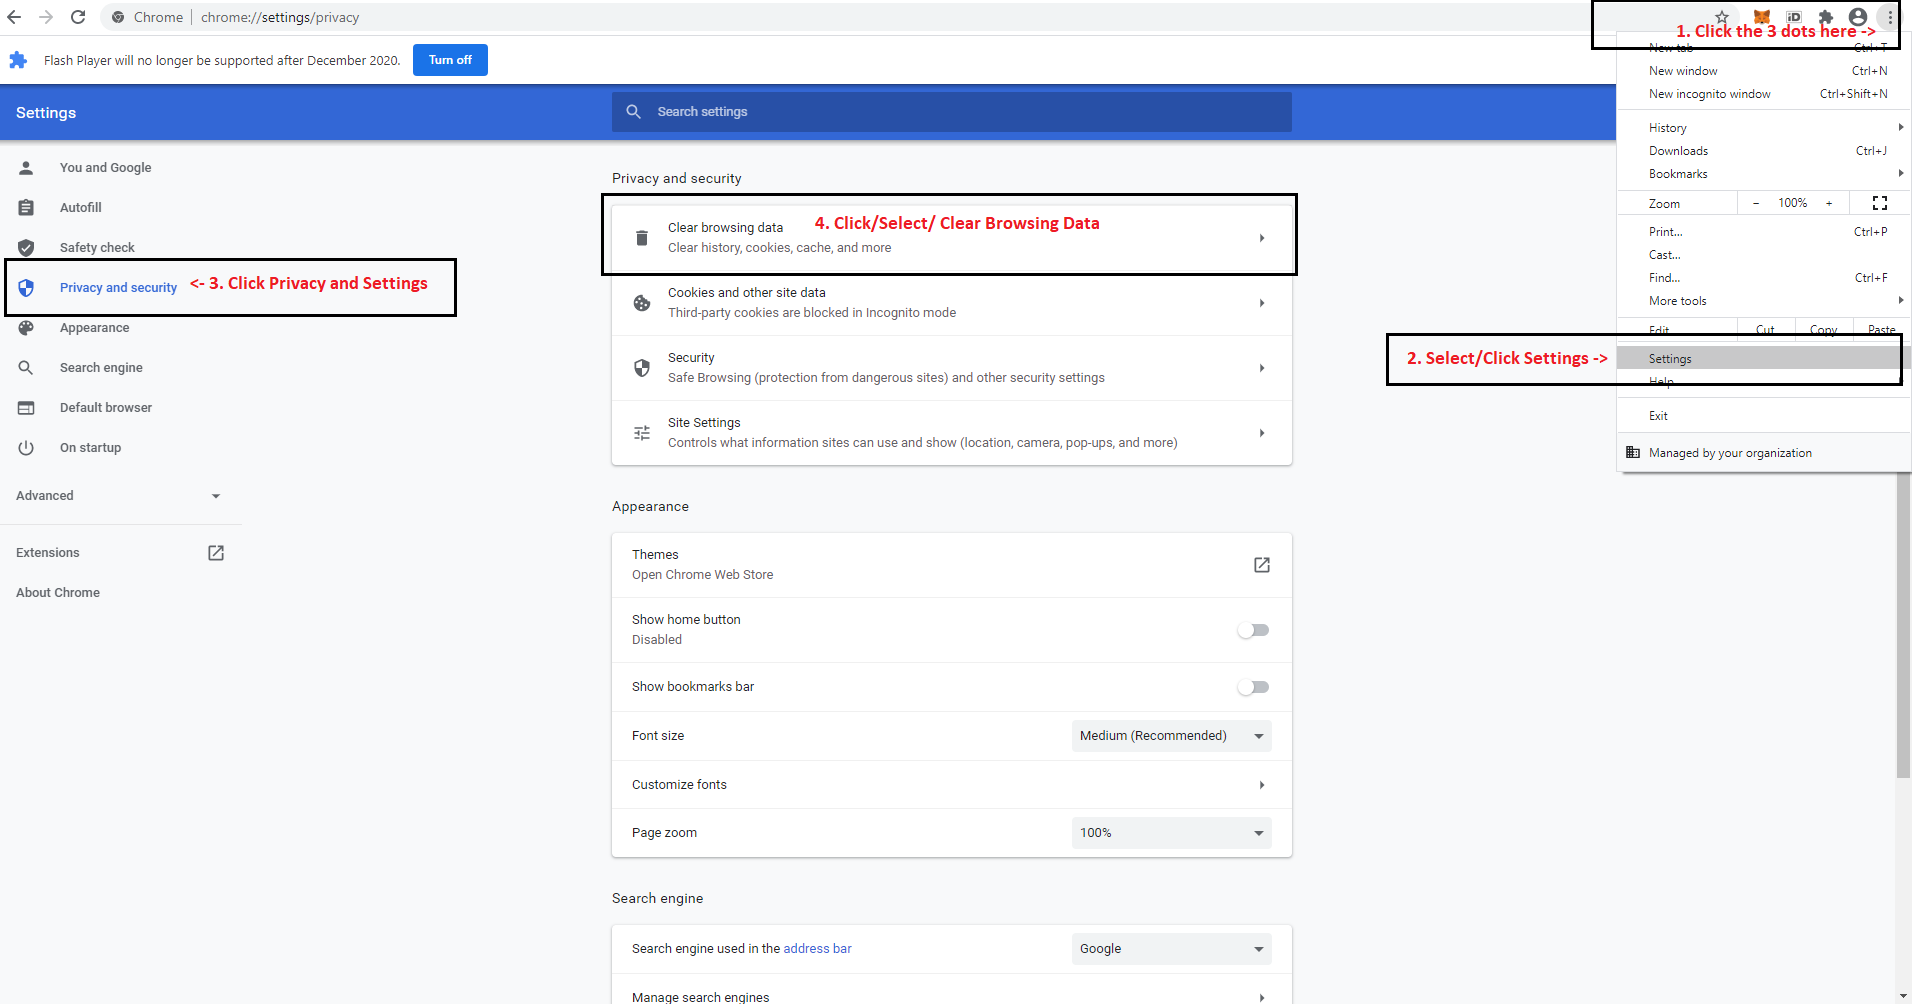 Google Chrome Settings overview